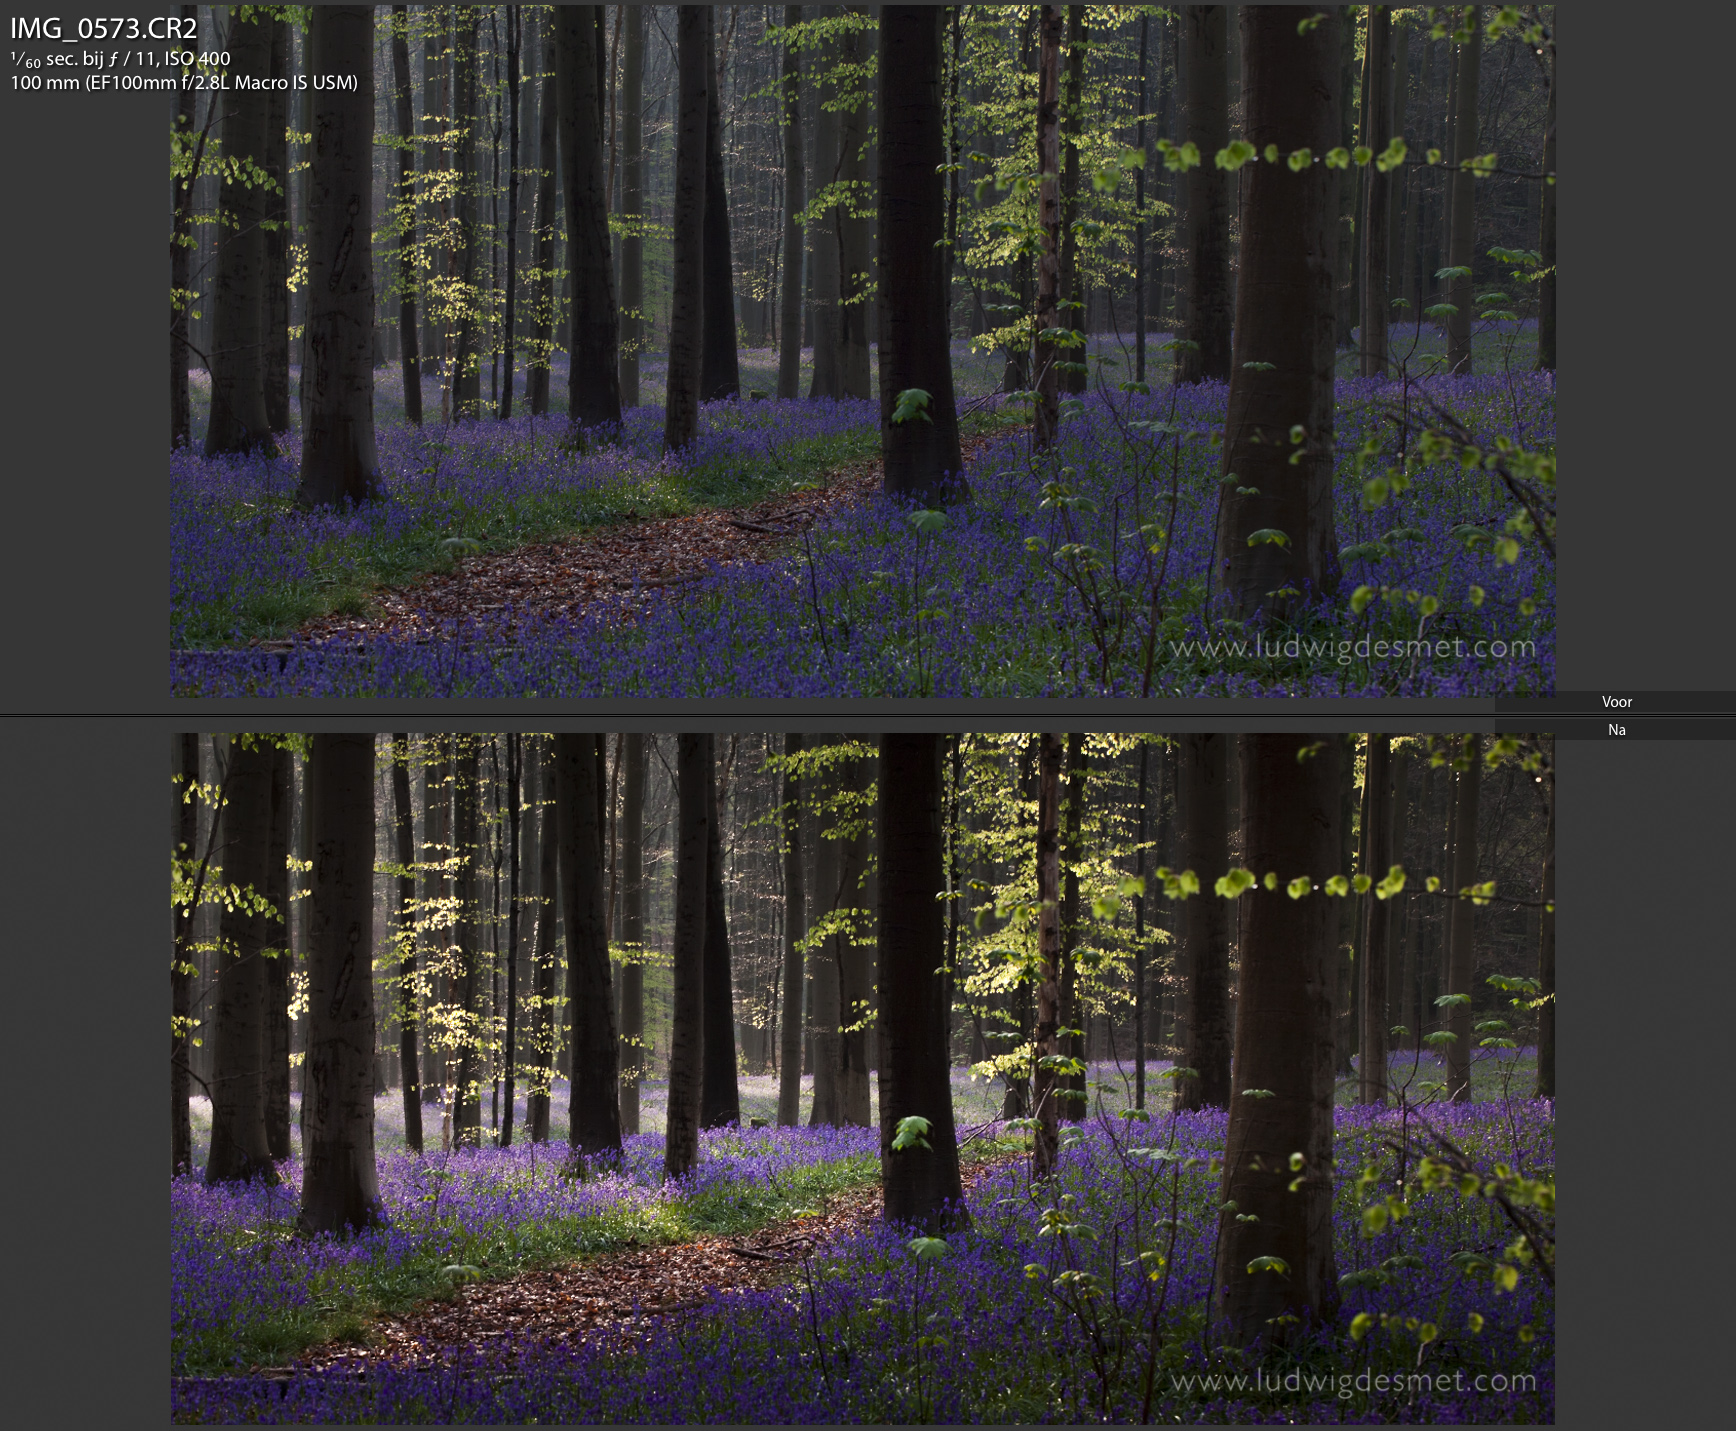 Hallerbos before and after